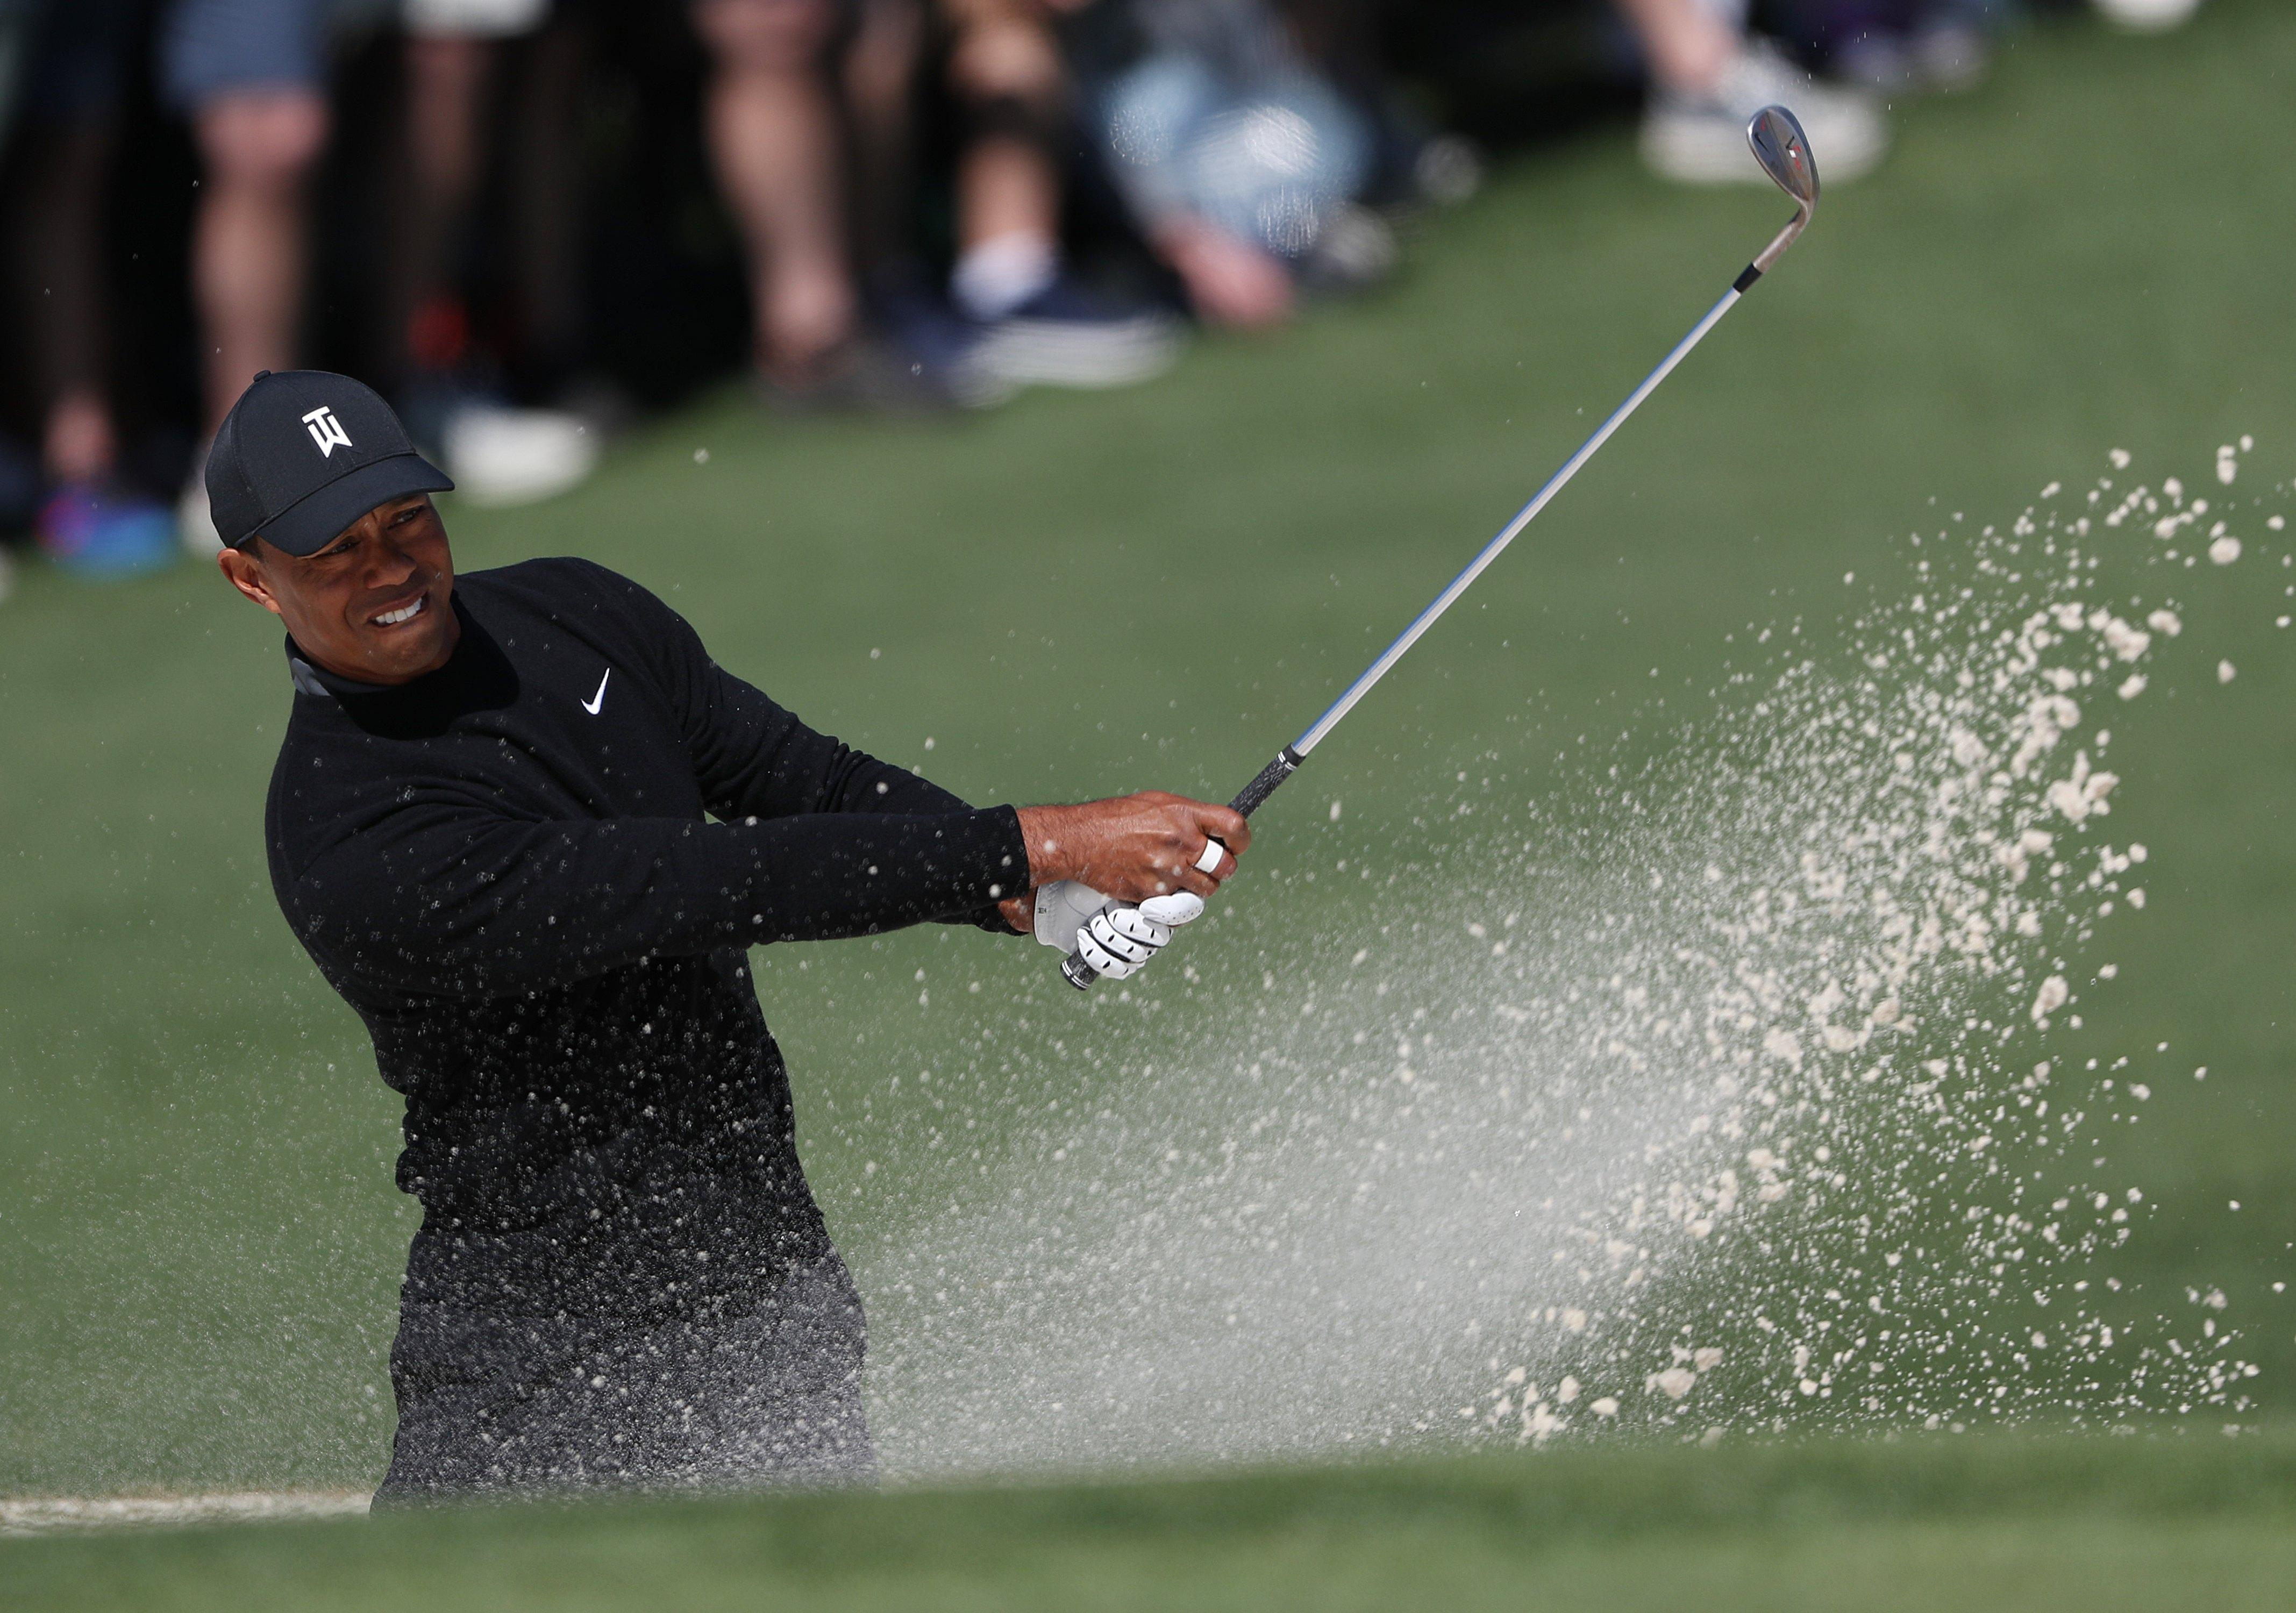 Tiger Woods was erratic in his play on his way to a score of 73 on Thursday